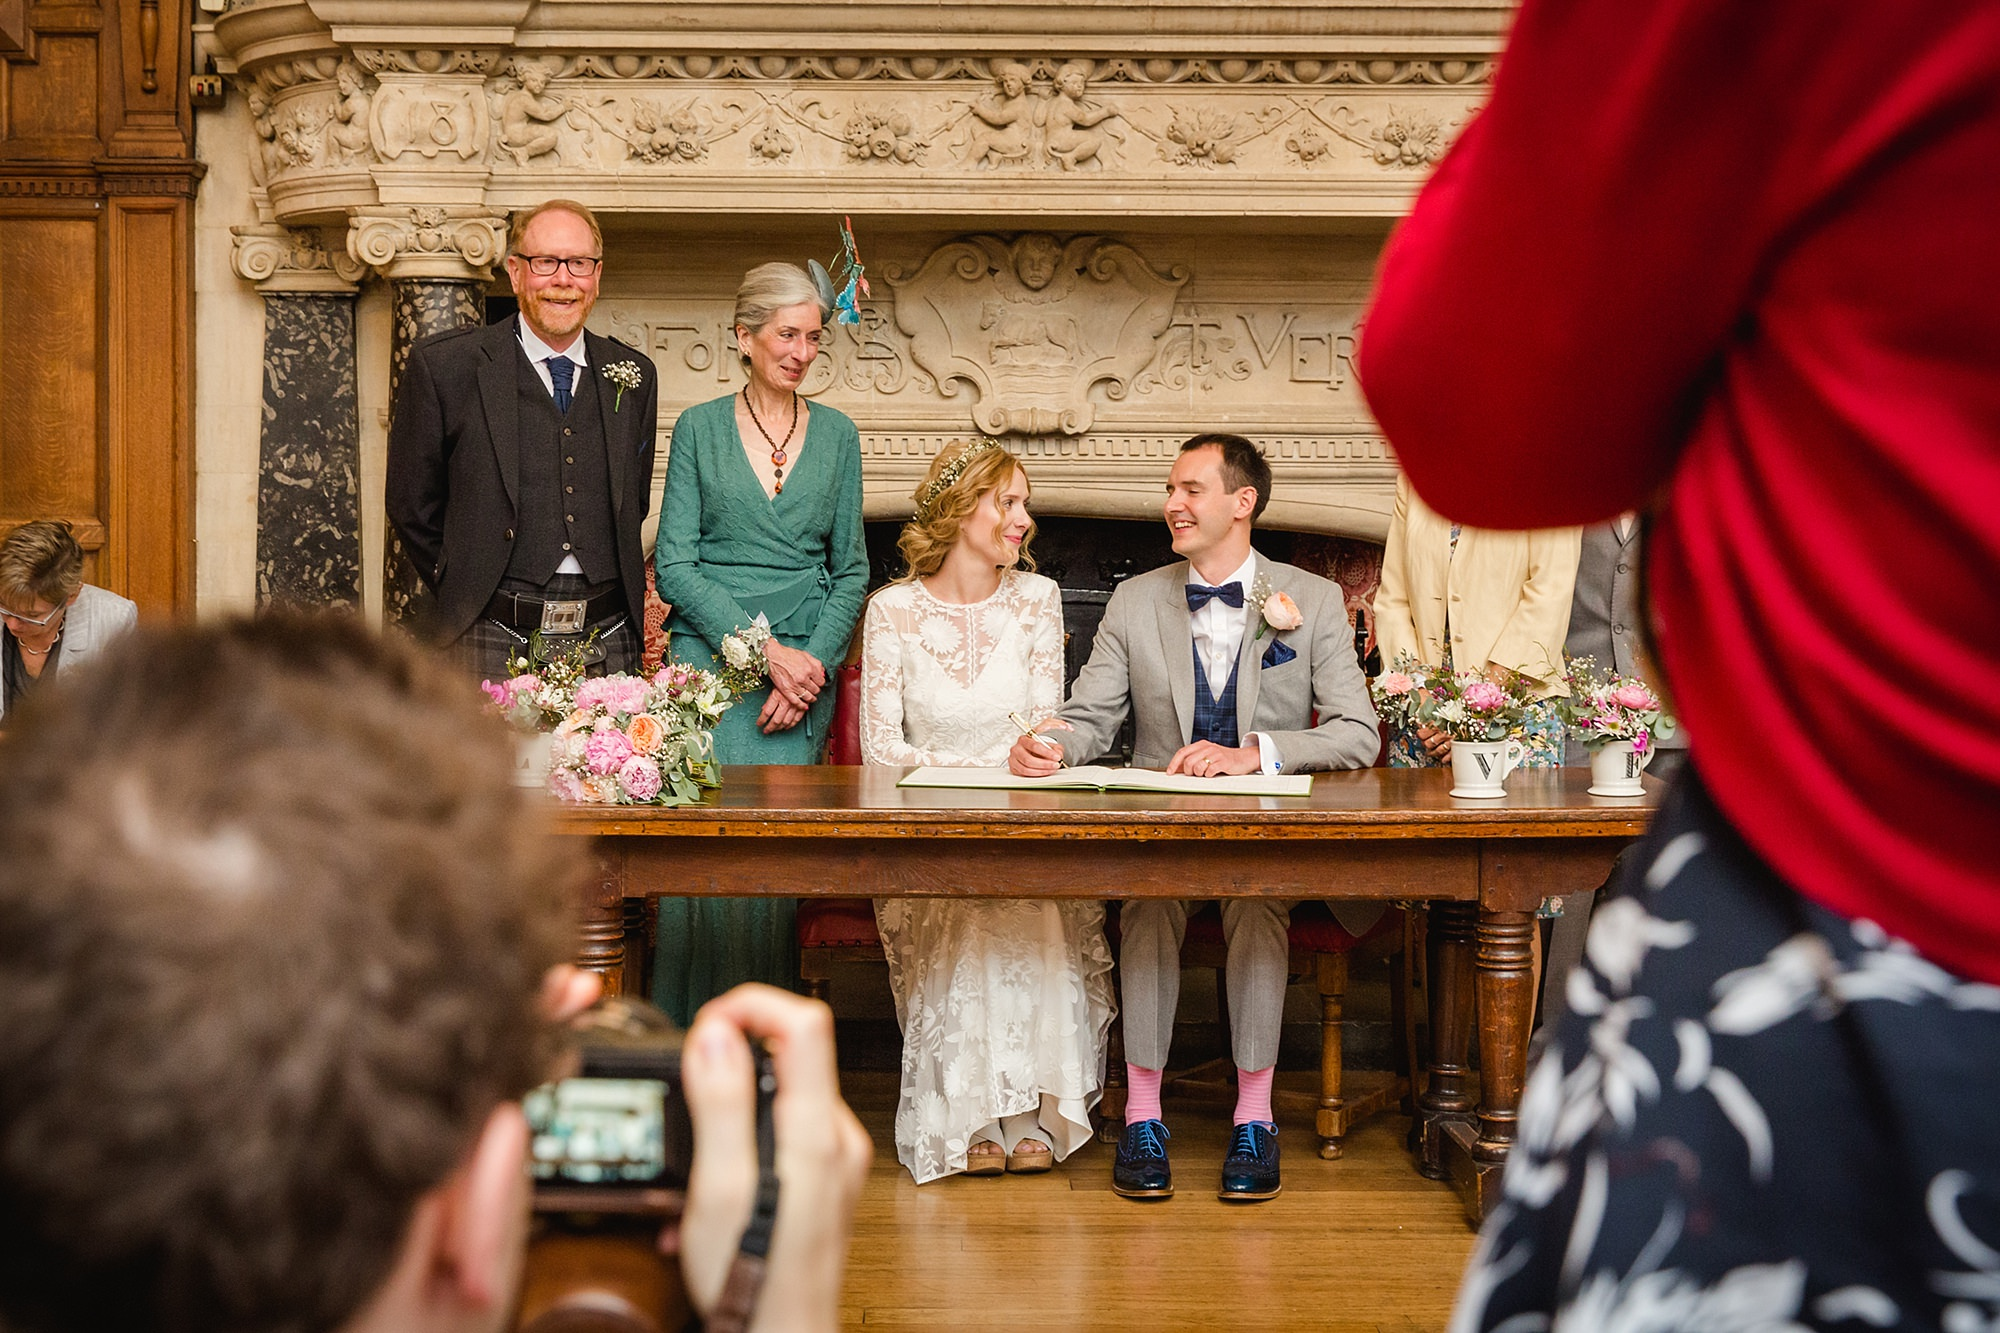 Isis Farmhouse Oxford Wedding wedding guests take picture of bride and groom signing register